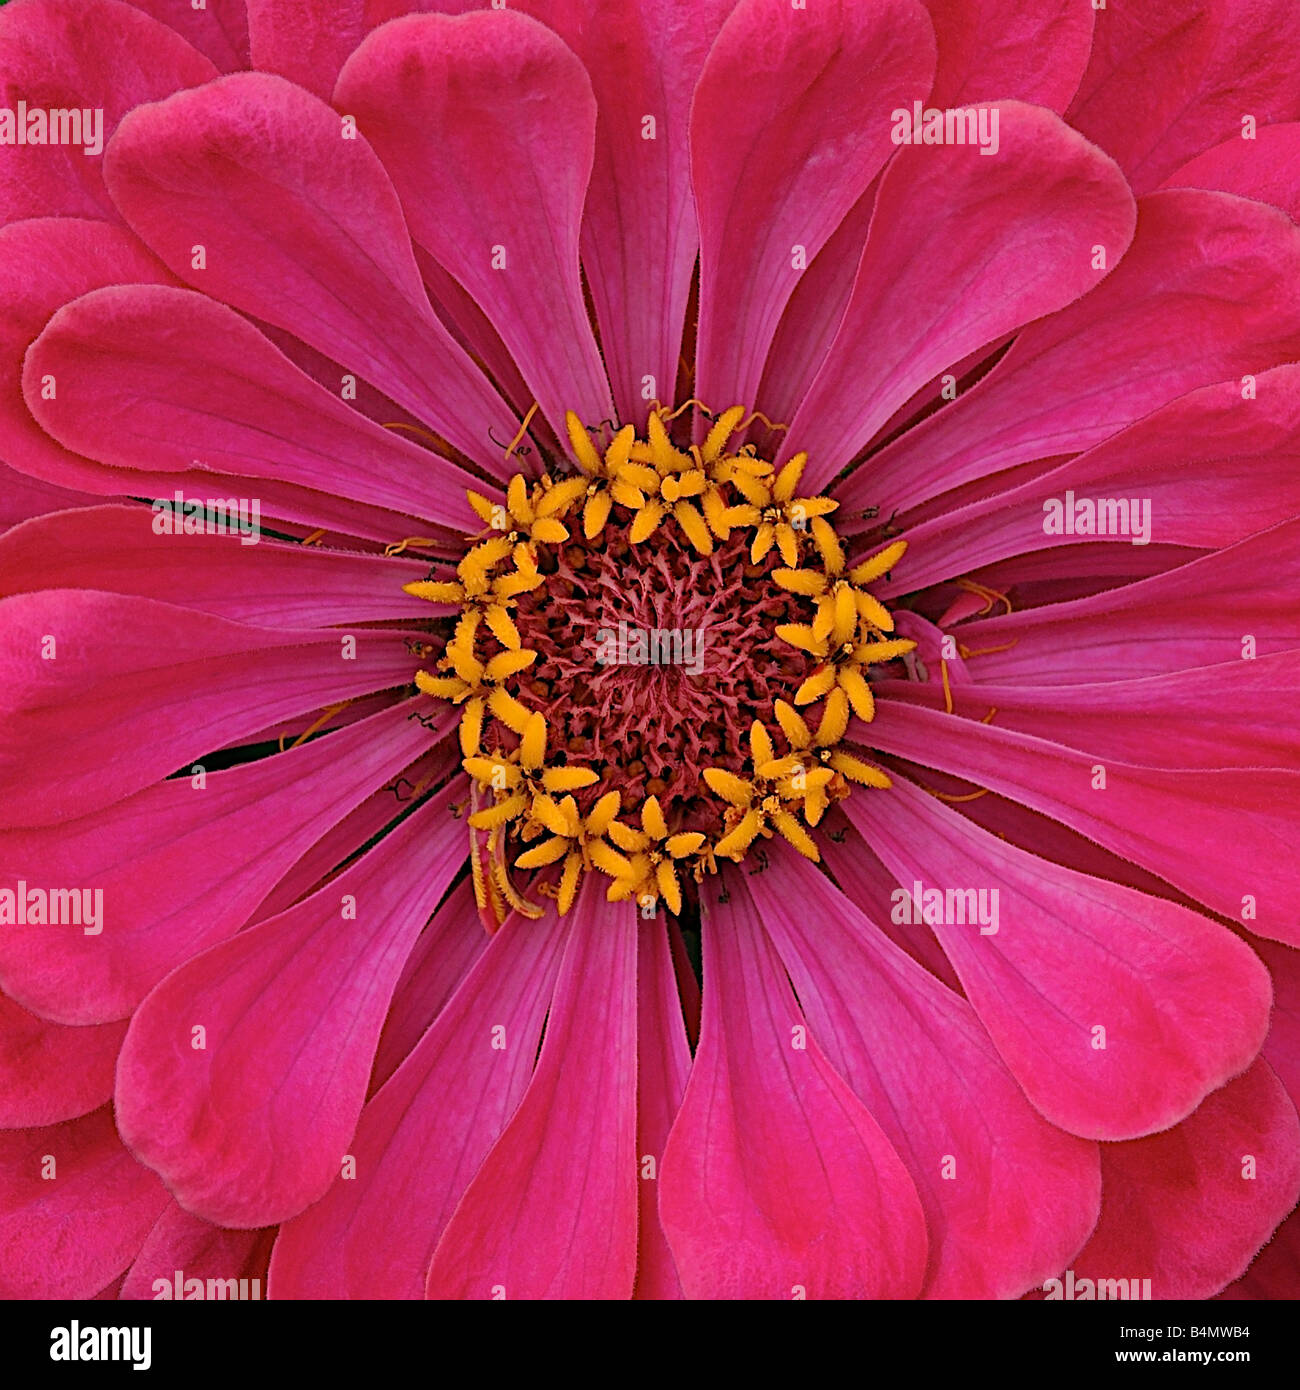 Bright Pink Flower With Yellow Centre Stock Photos Bright Pink